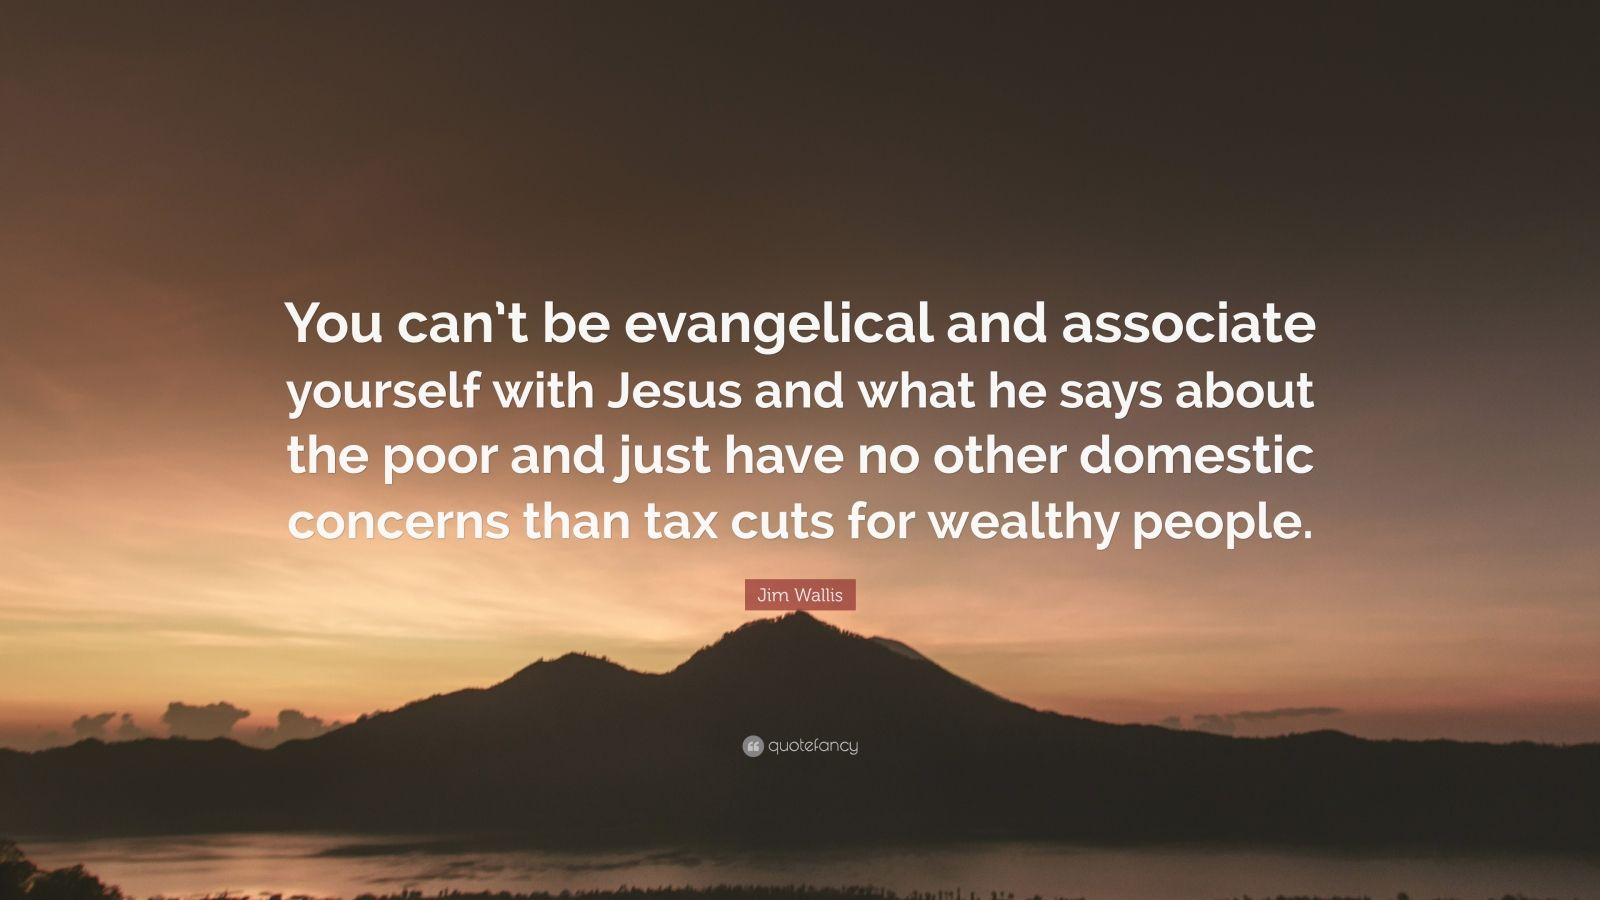 """Jim Wallis Quote: """"You can't be evangelical and associate yourself with Jesus and what he says about the poor and just have no other domestic concerns than tax cuts for wealthy people."""""""